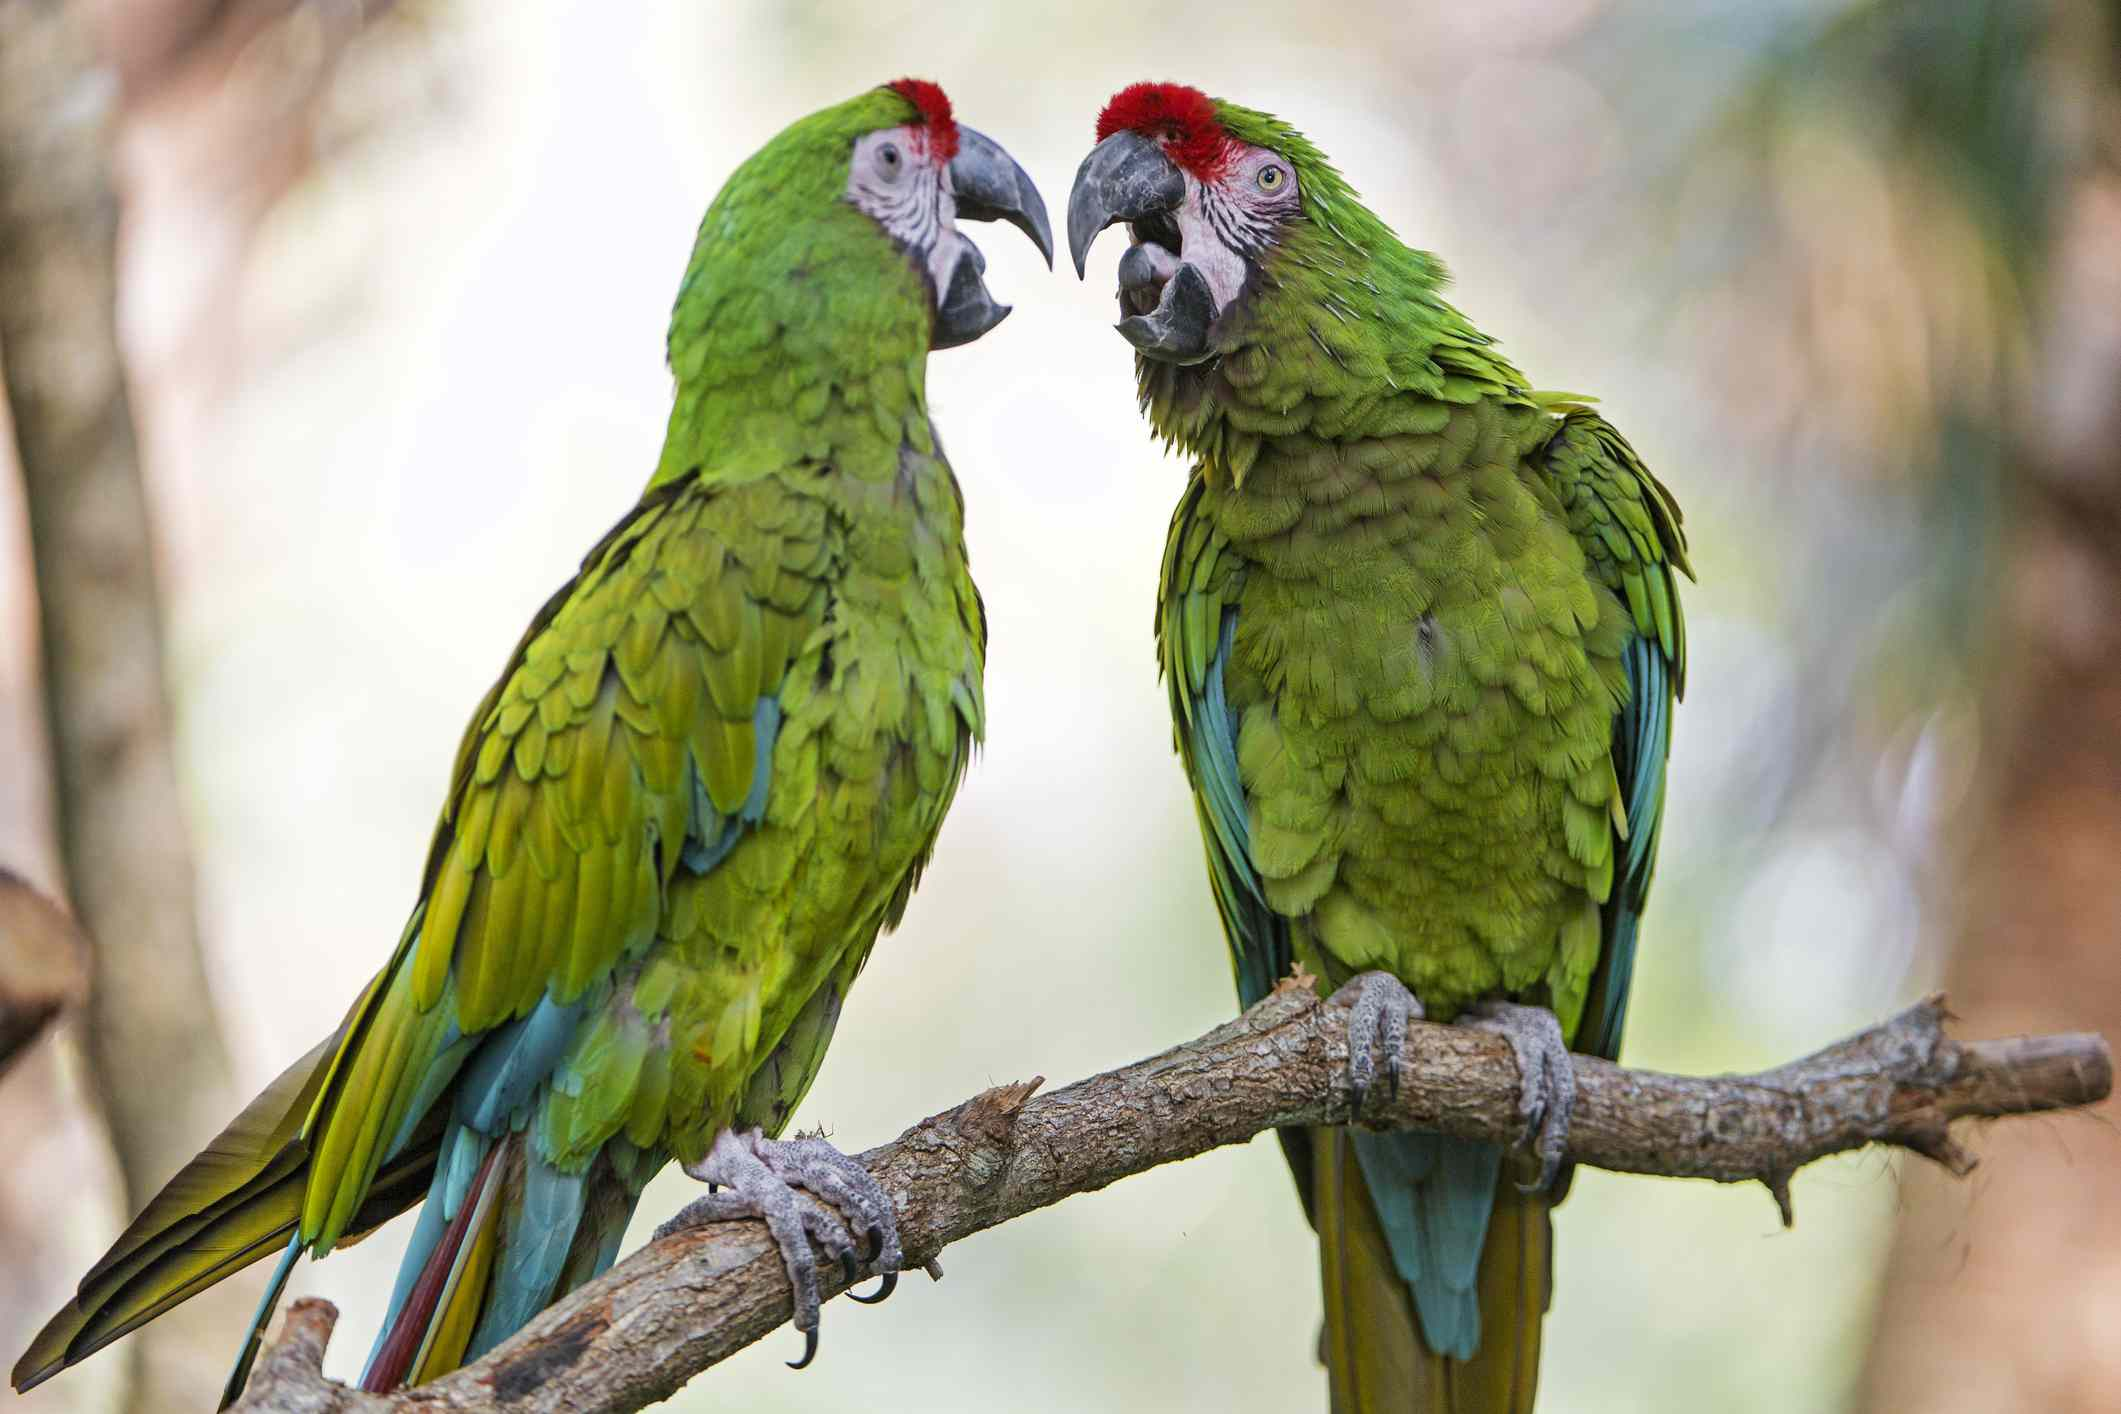 Two green macaws on a branch talking to each other